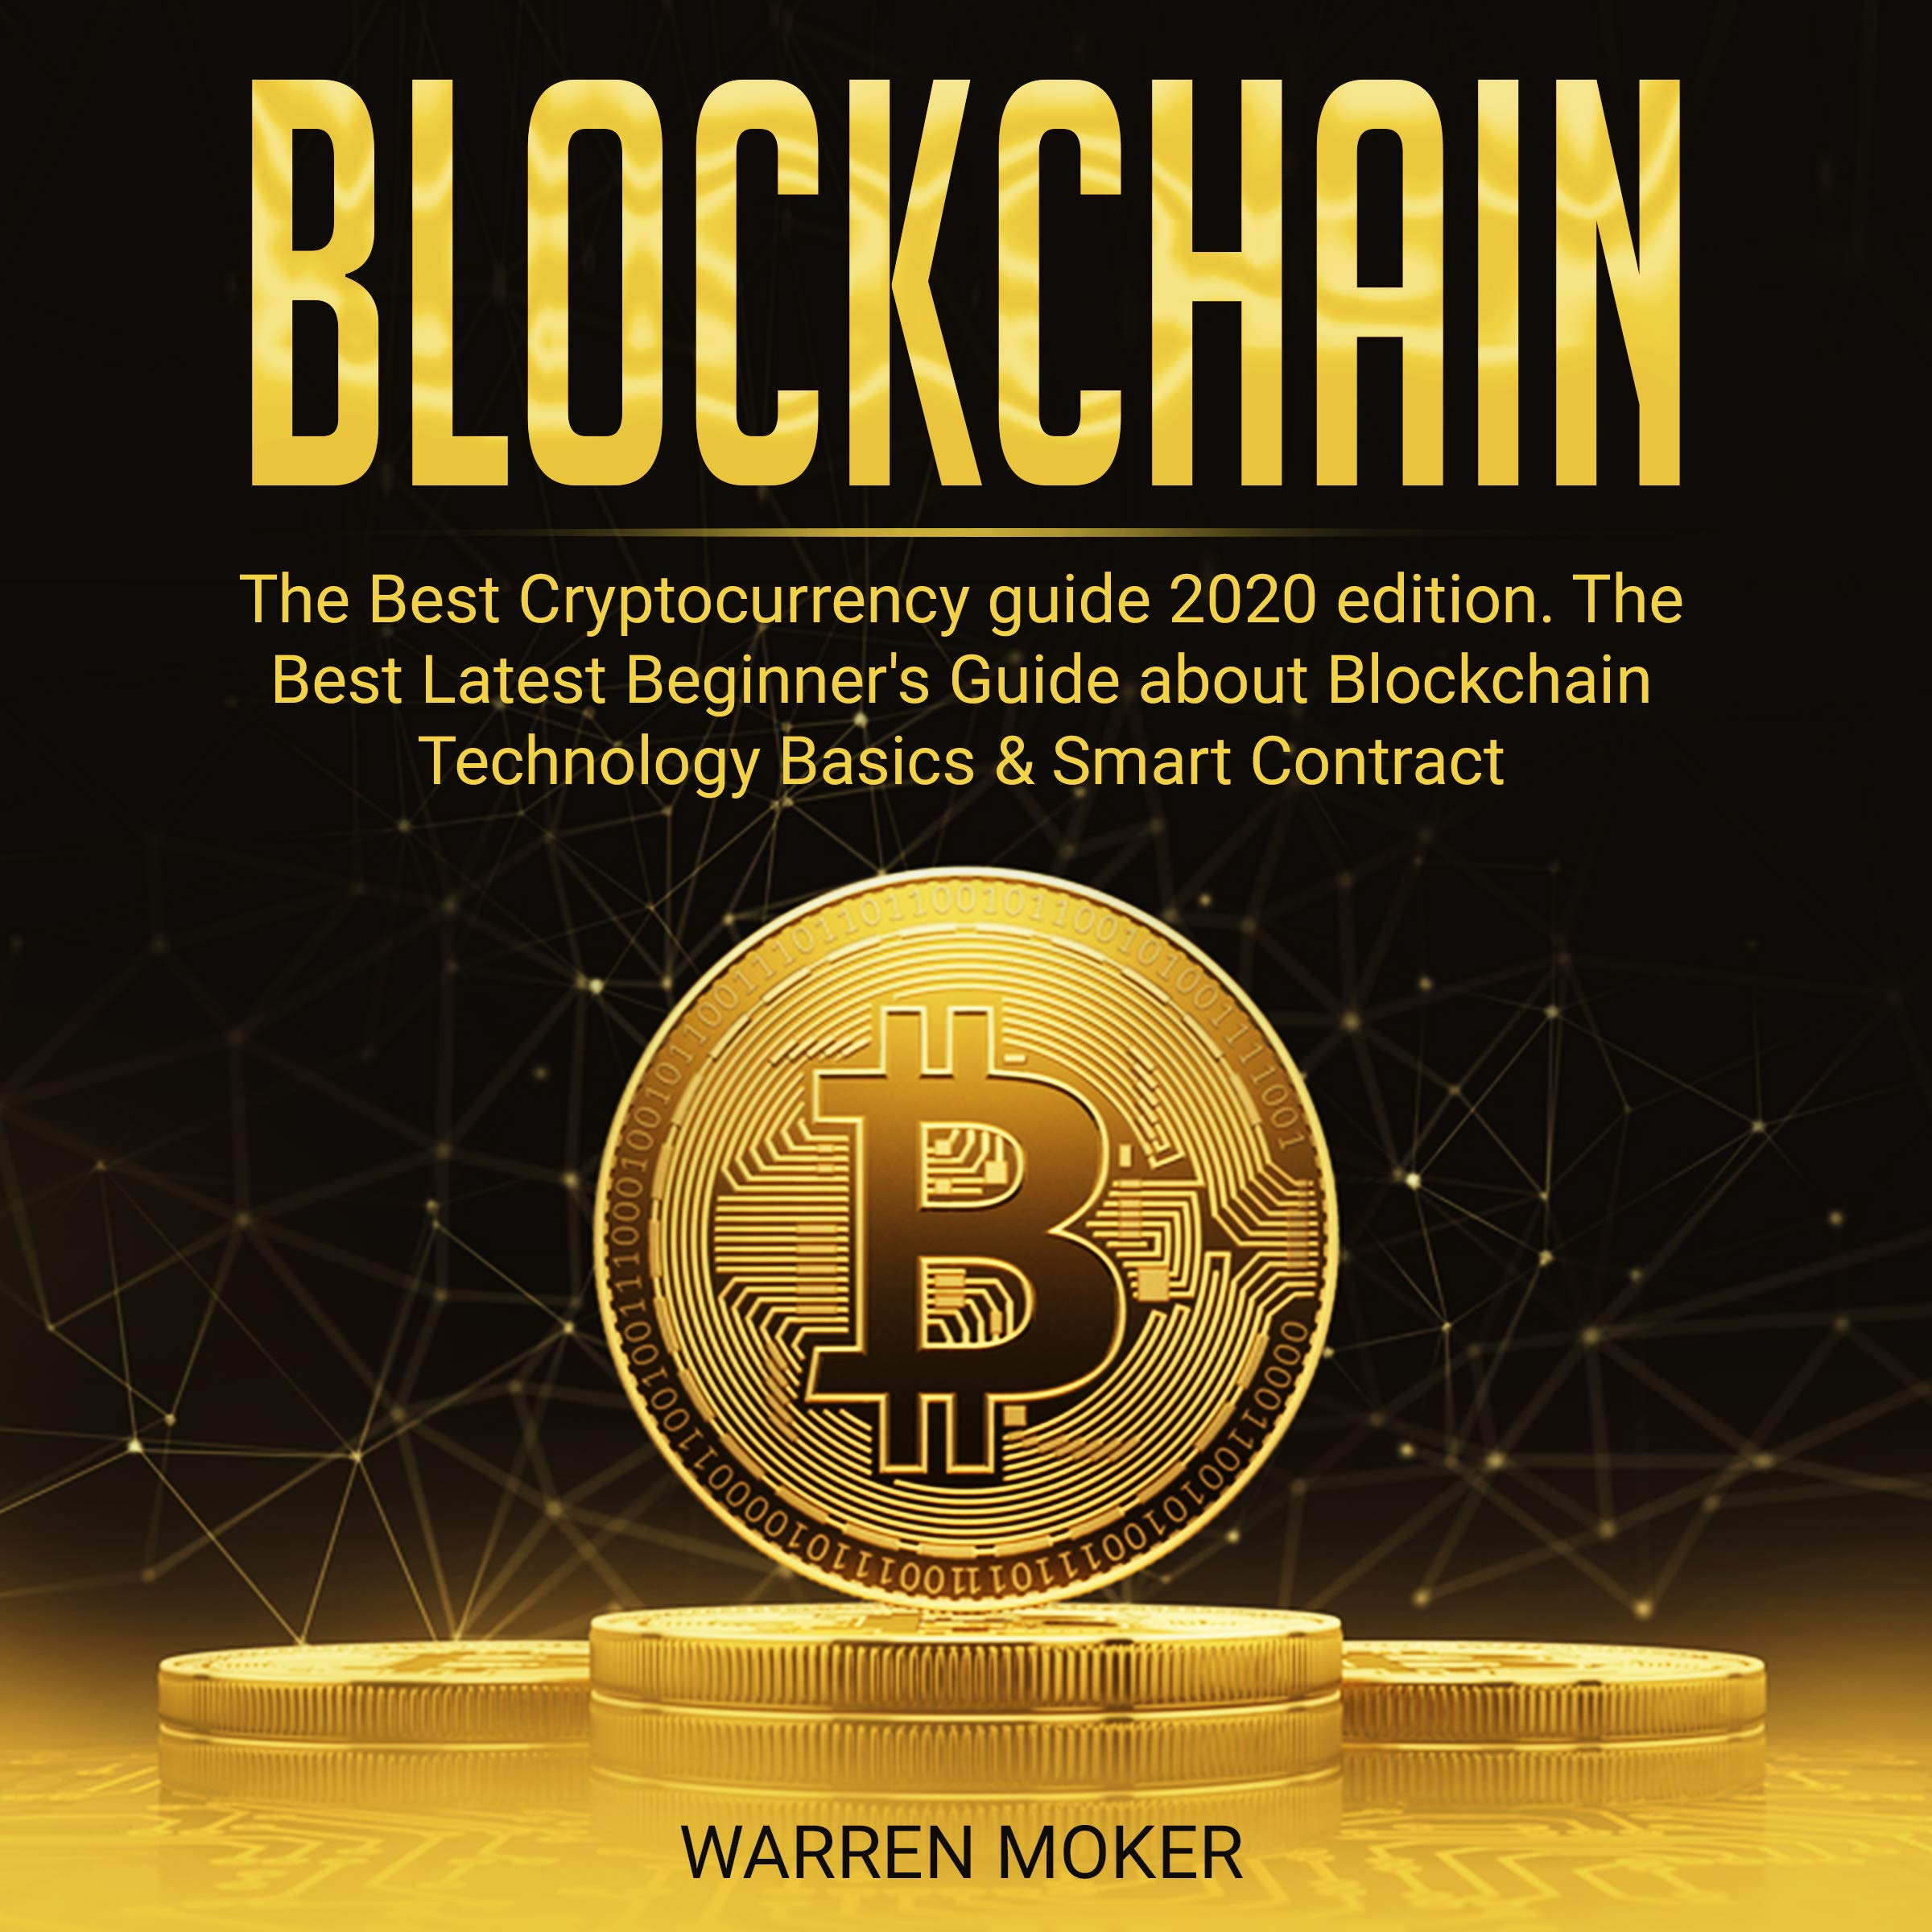 BLOCKCHAIN: THE BEST CRYPTOCURRENCY GUIDE 2020 EDITION: THE LATEST BEGINNER'S GUIDE ABOUT BLOCKCHAIN TECHNOLOGY BASICS & SMART CONTRACT